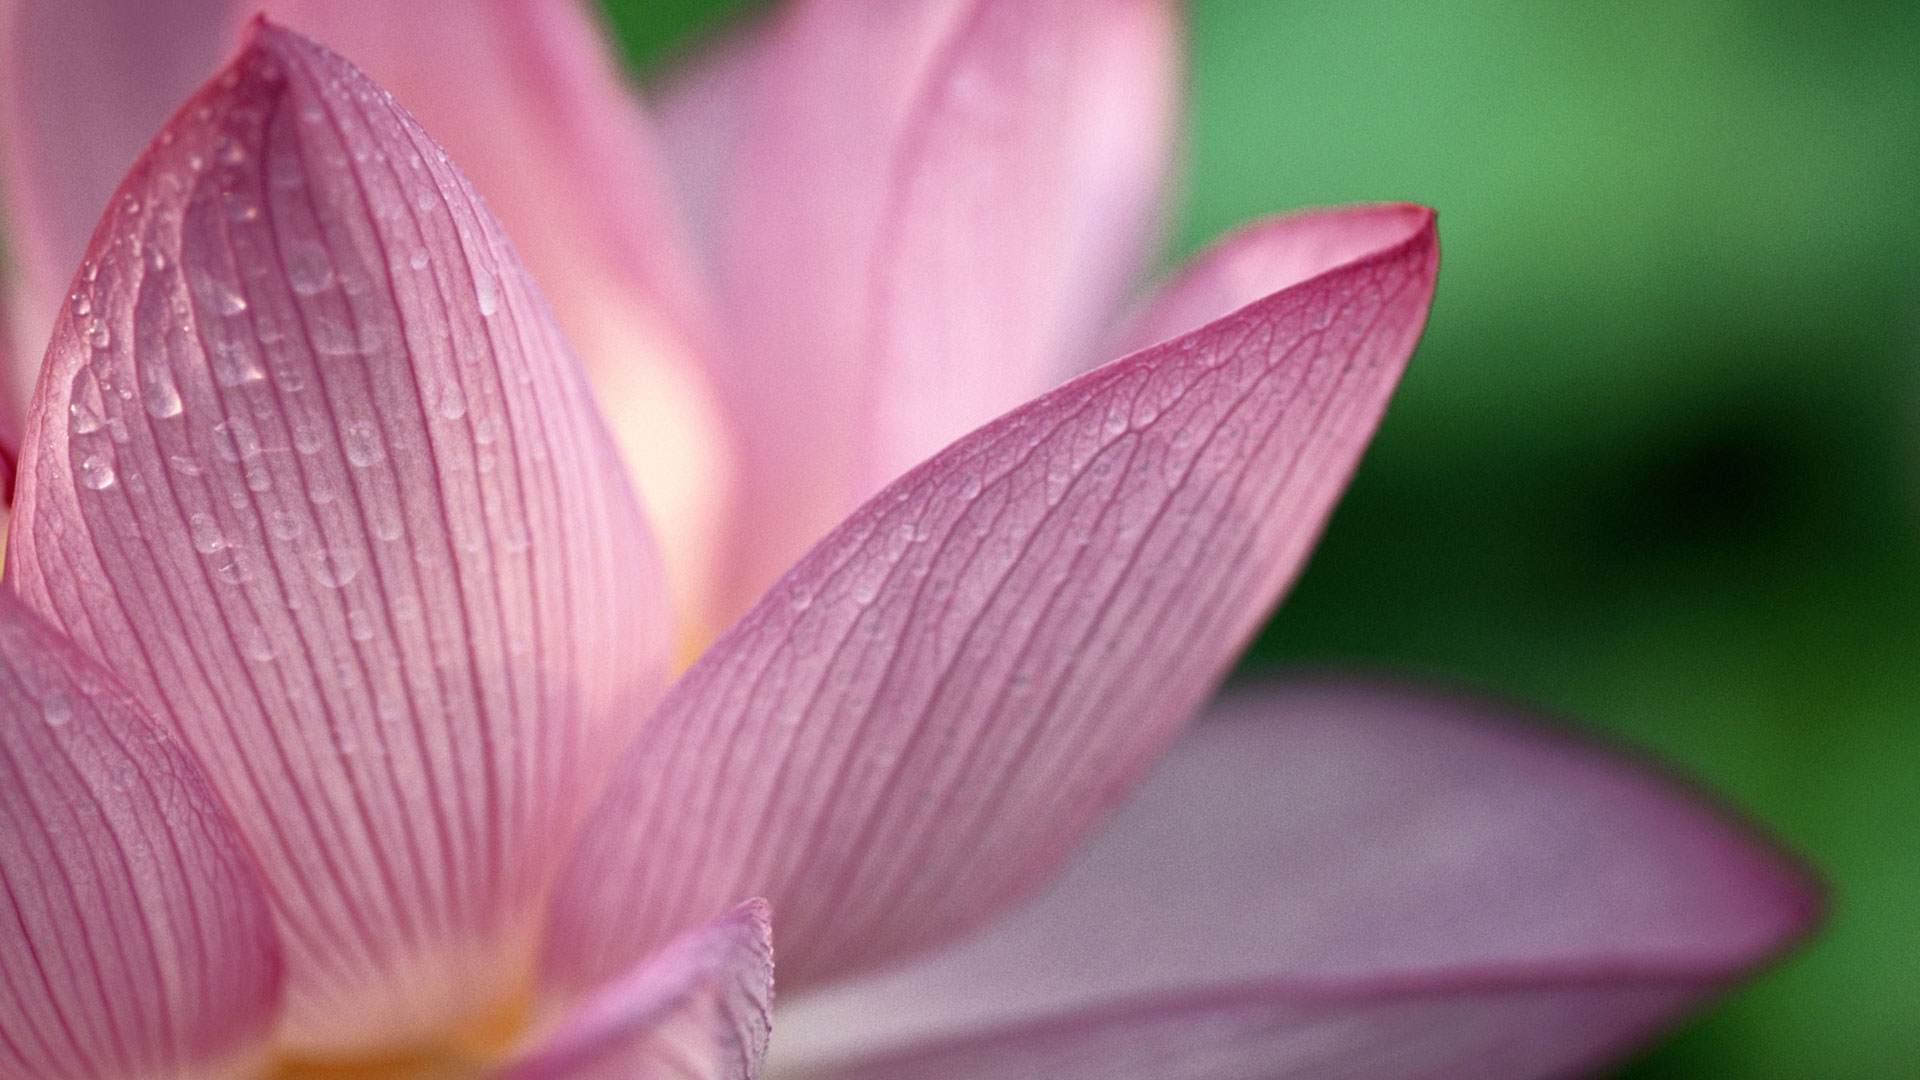 Flower Pink 1080p HD Wallpapers HD Wallpapers 1920x1080